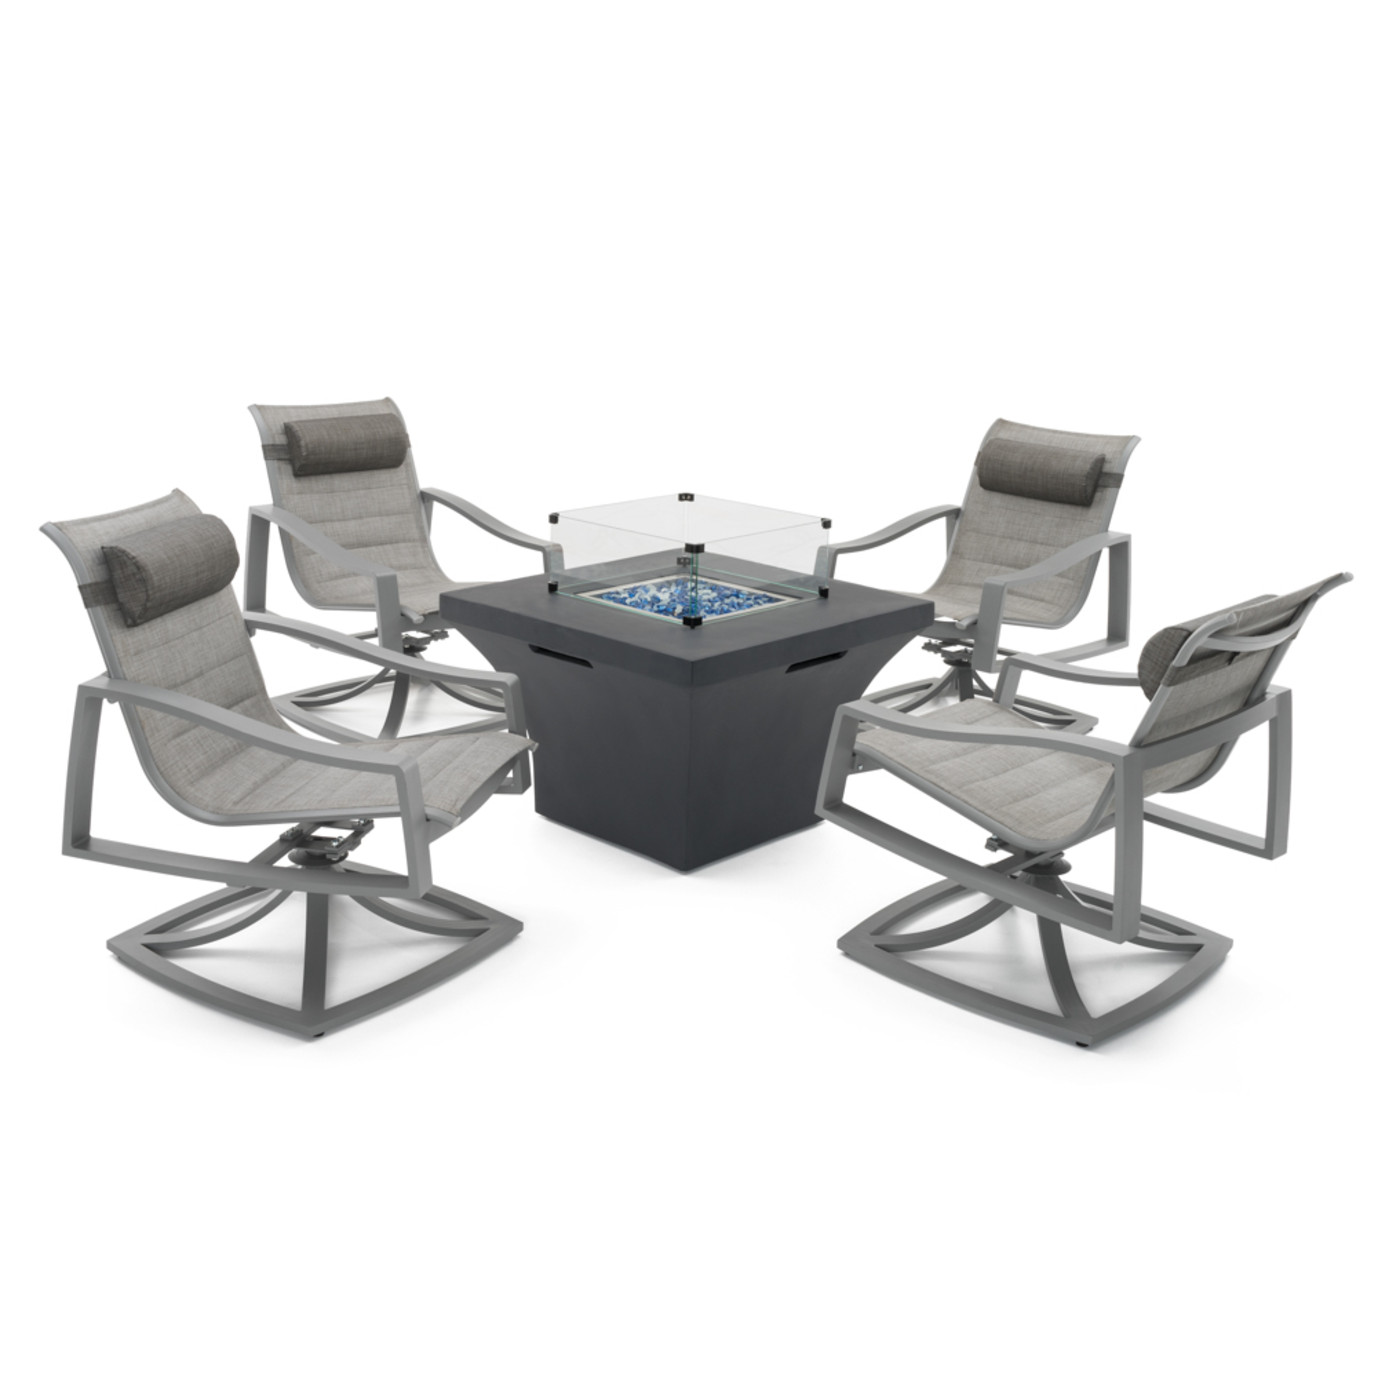 Portofino Padded Sling 5pc Motion Fire Chat Space Grey